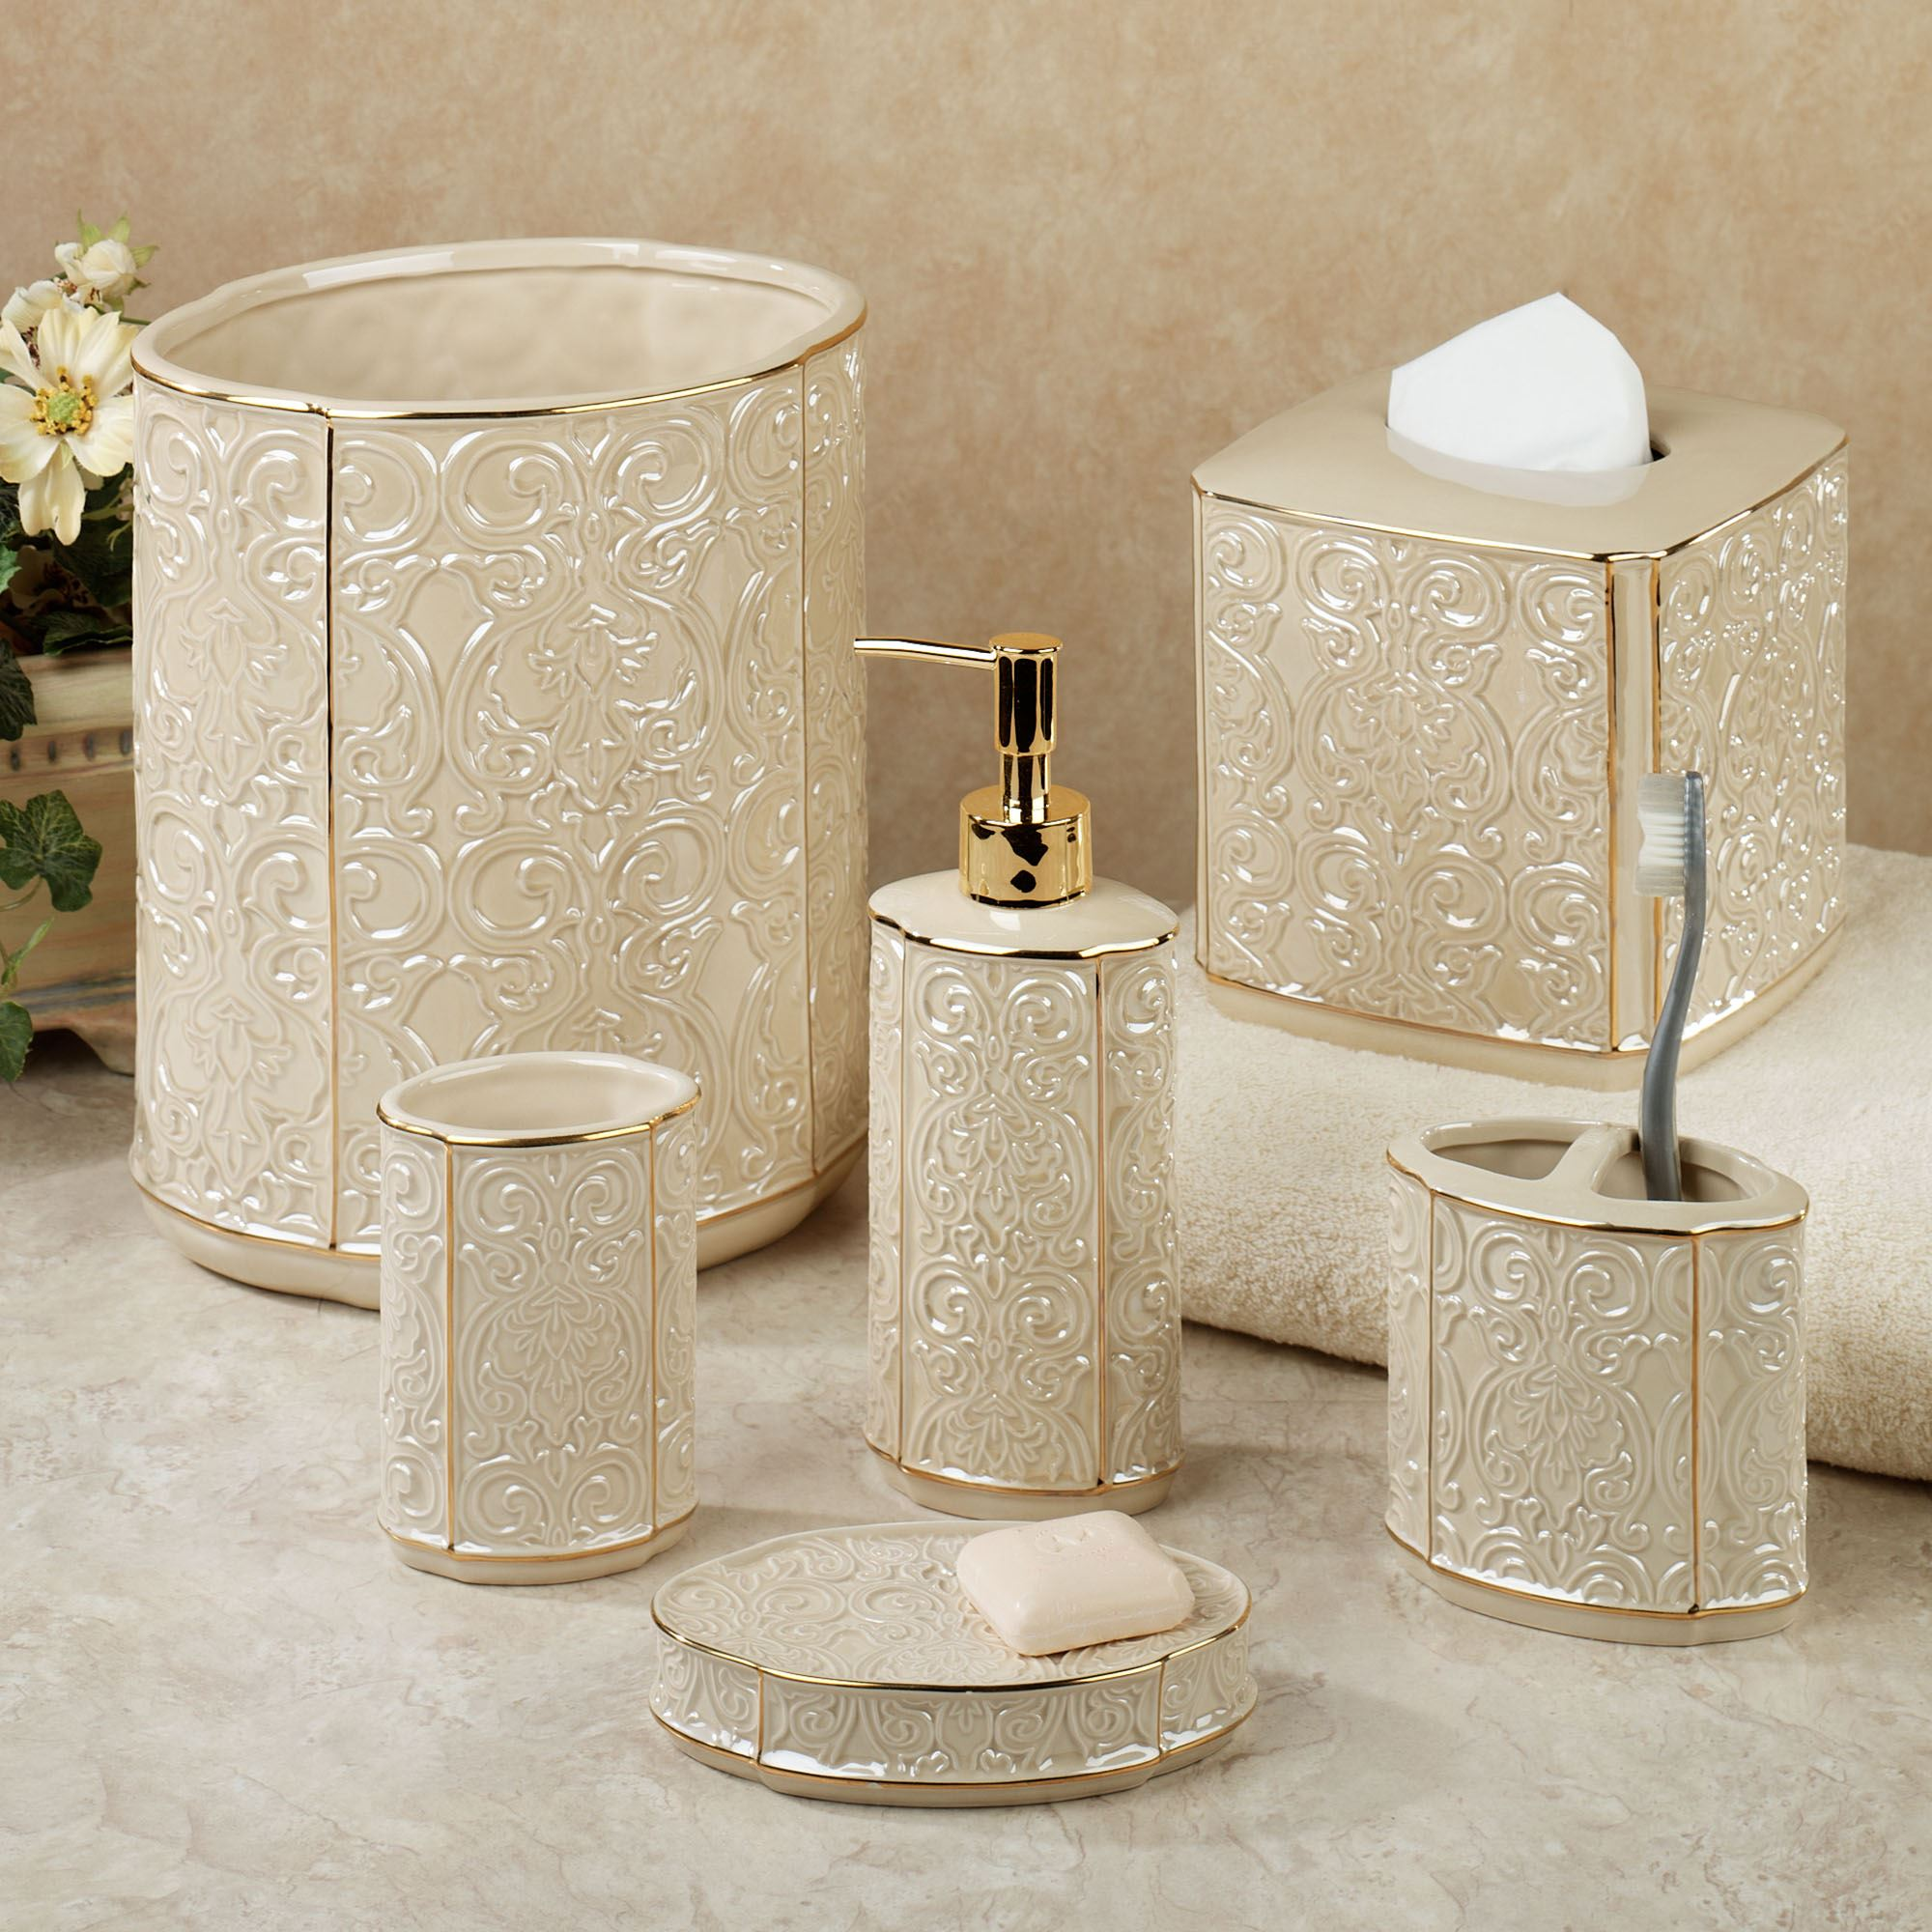 furla cream damask ceramic bath accessories On bathroom sets